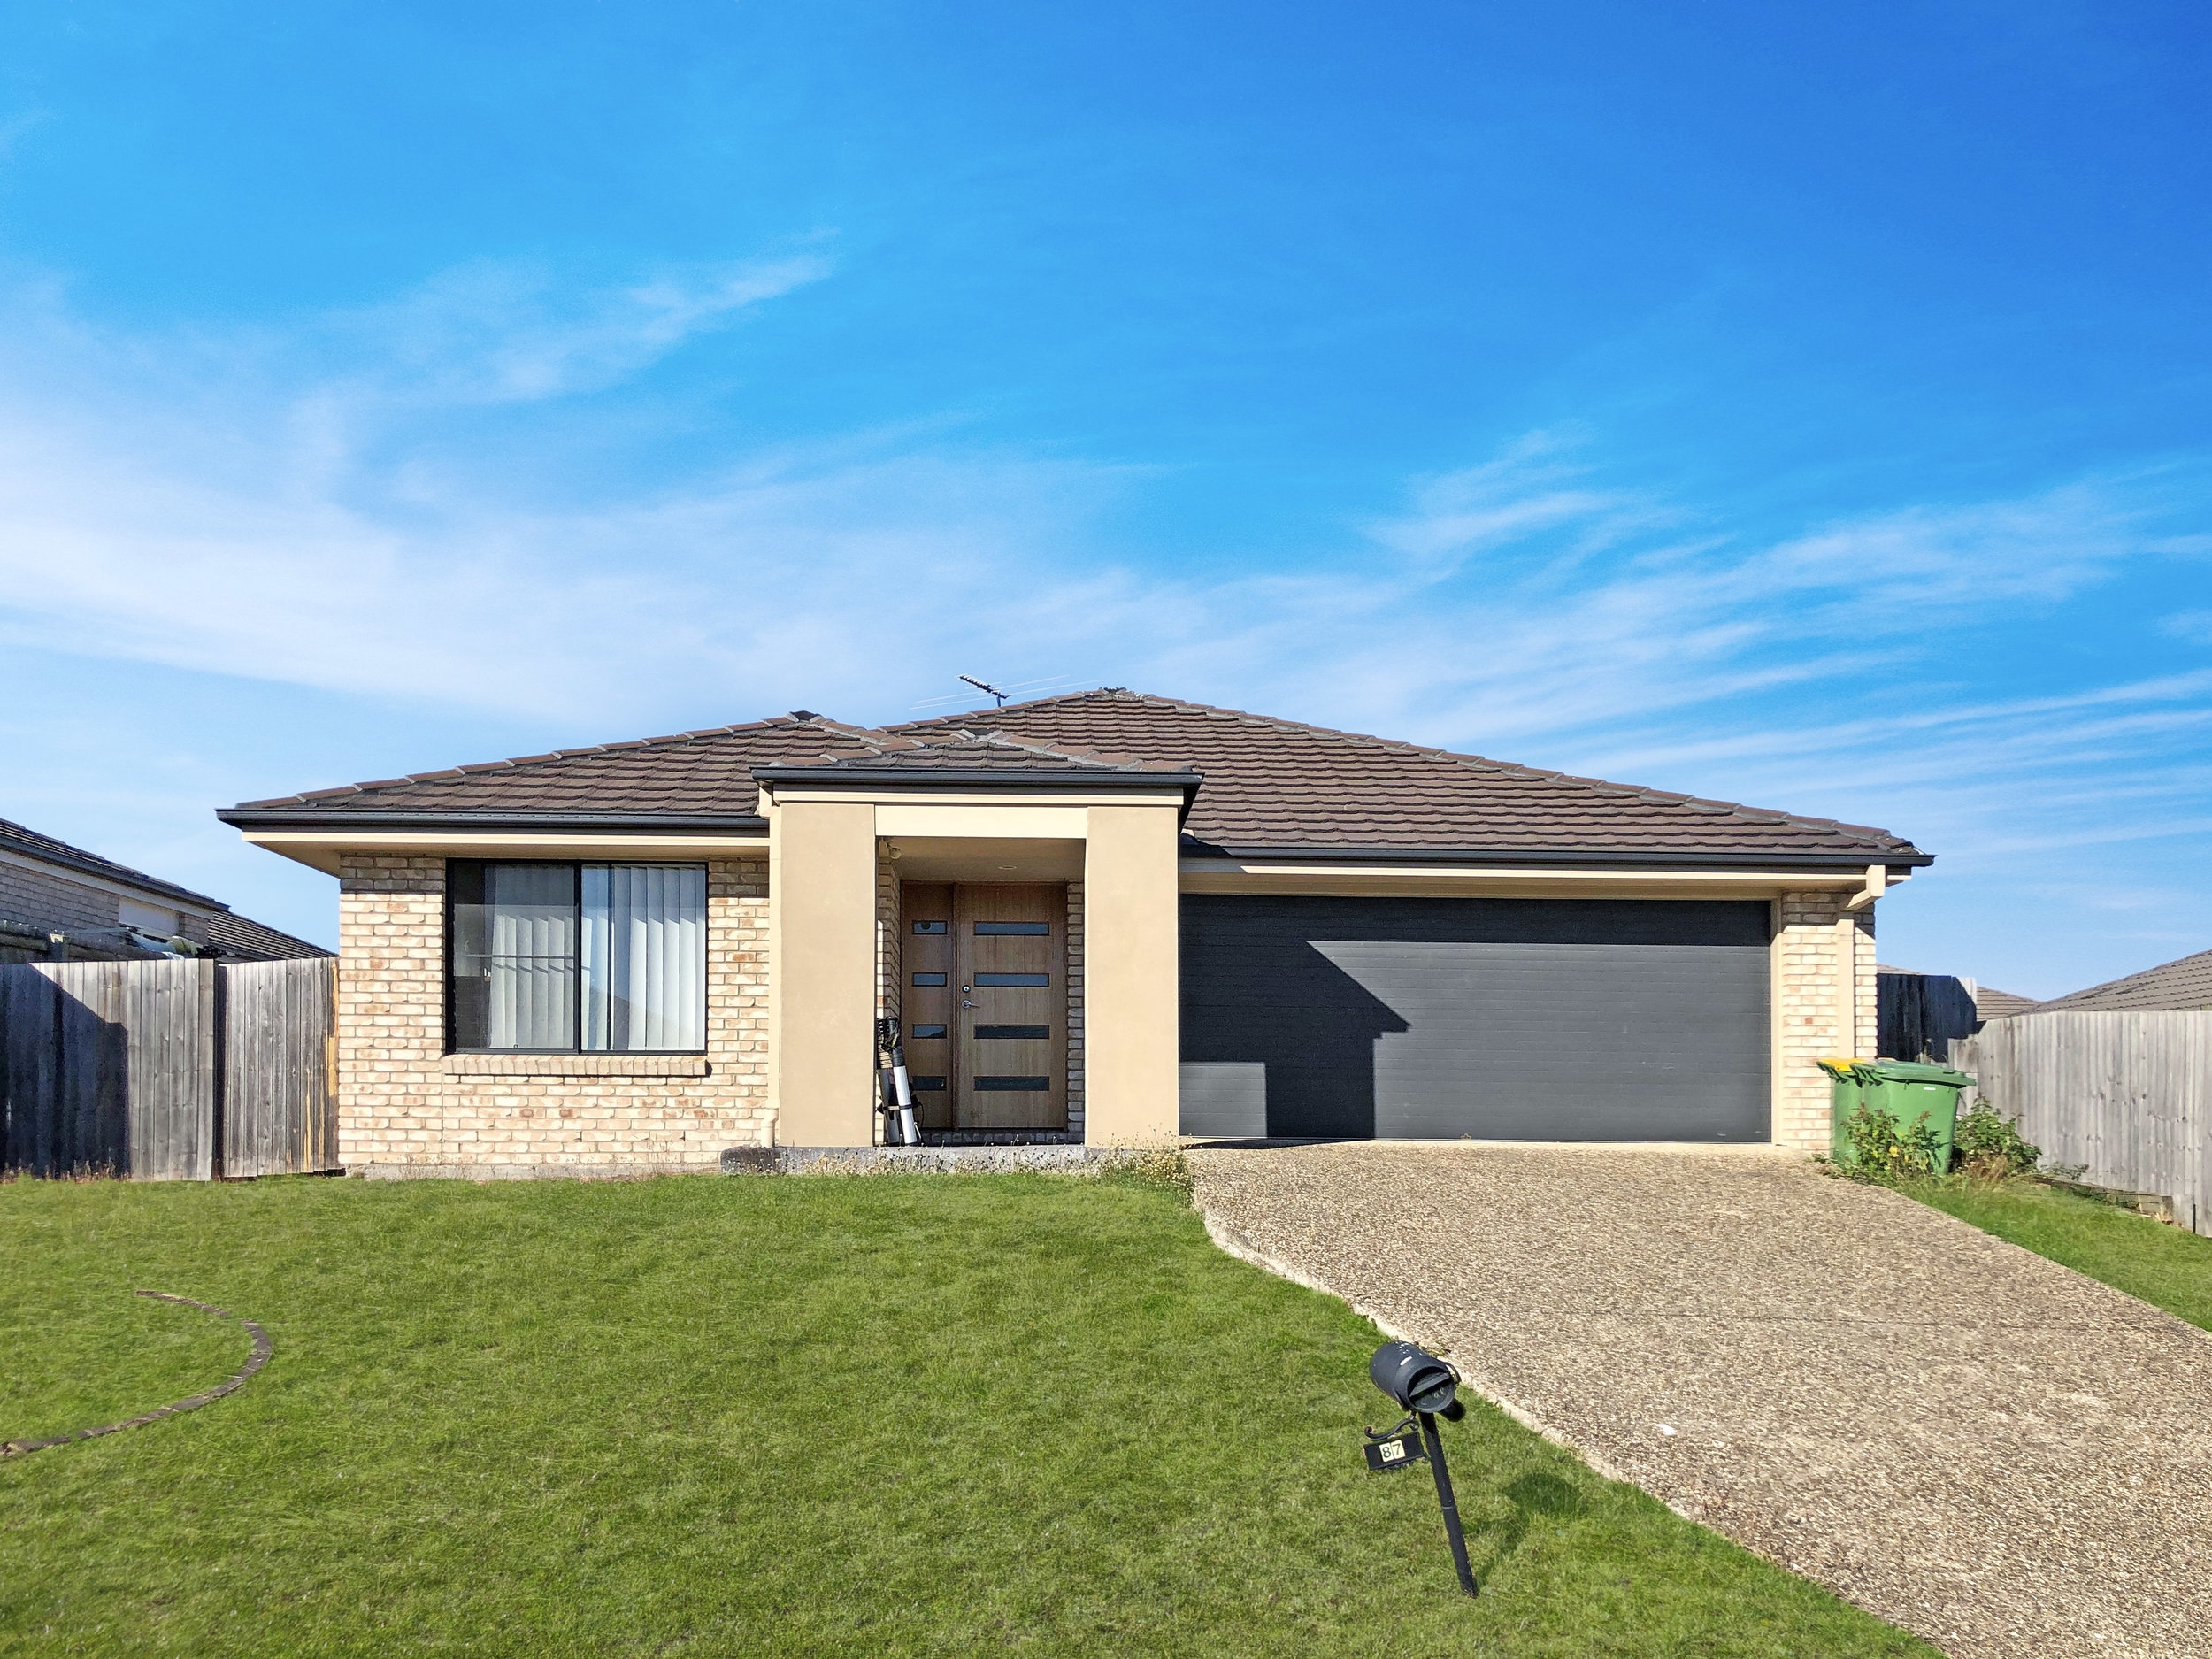 87 Westminster Crescent, Raceview QLD 4305 - SOLD OFF-MARKET $314,000